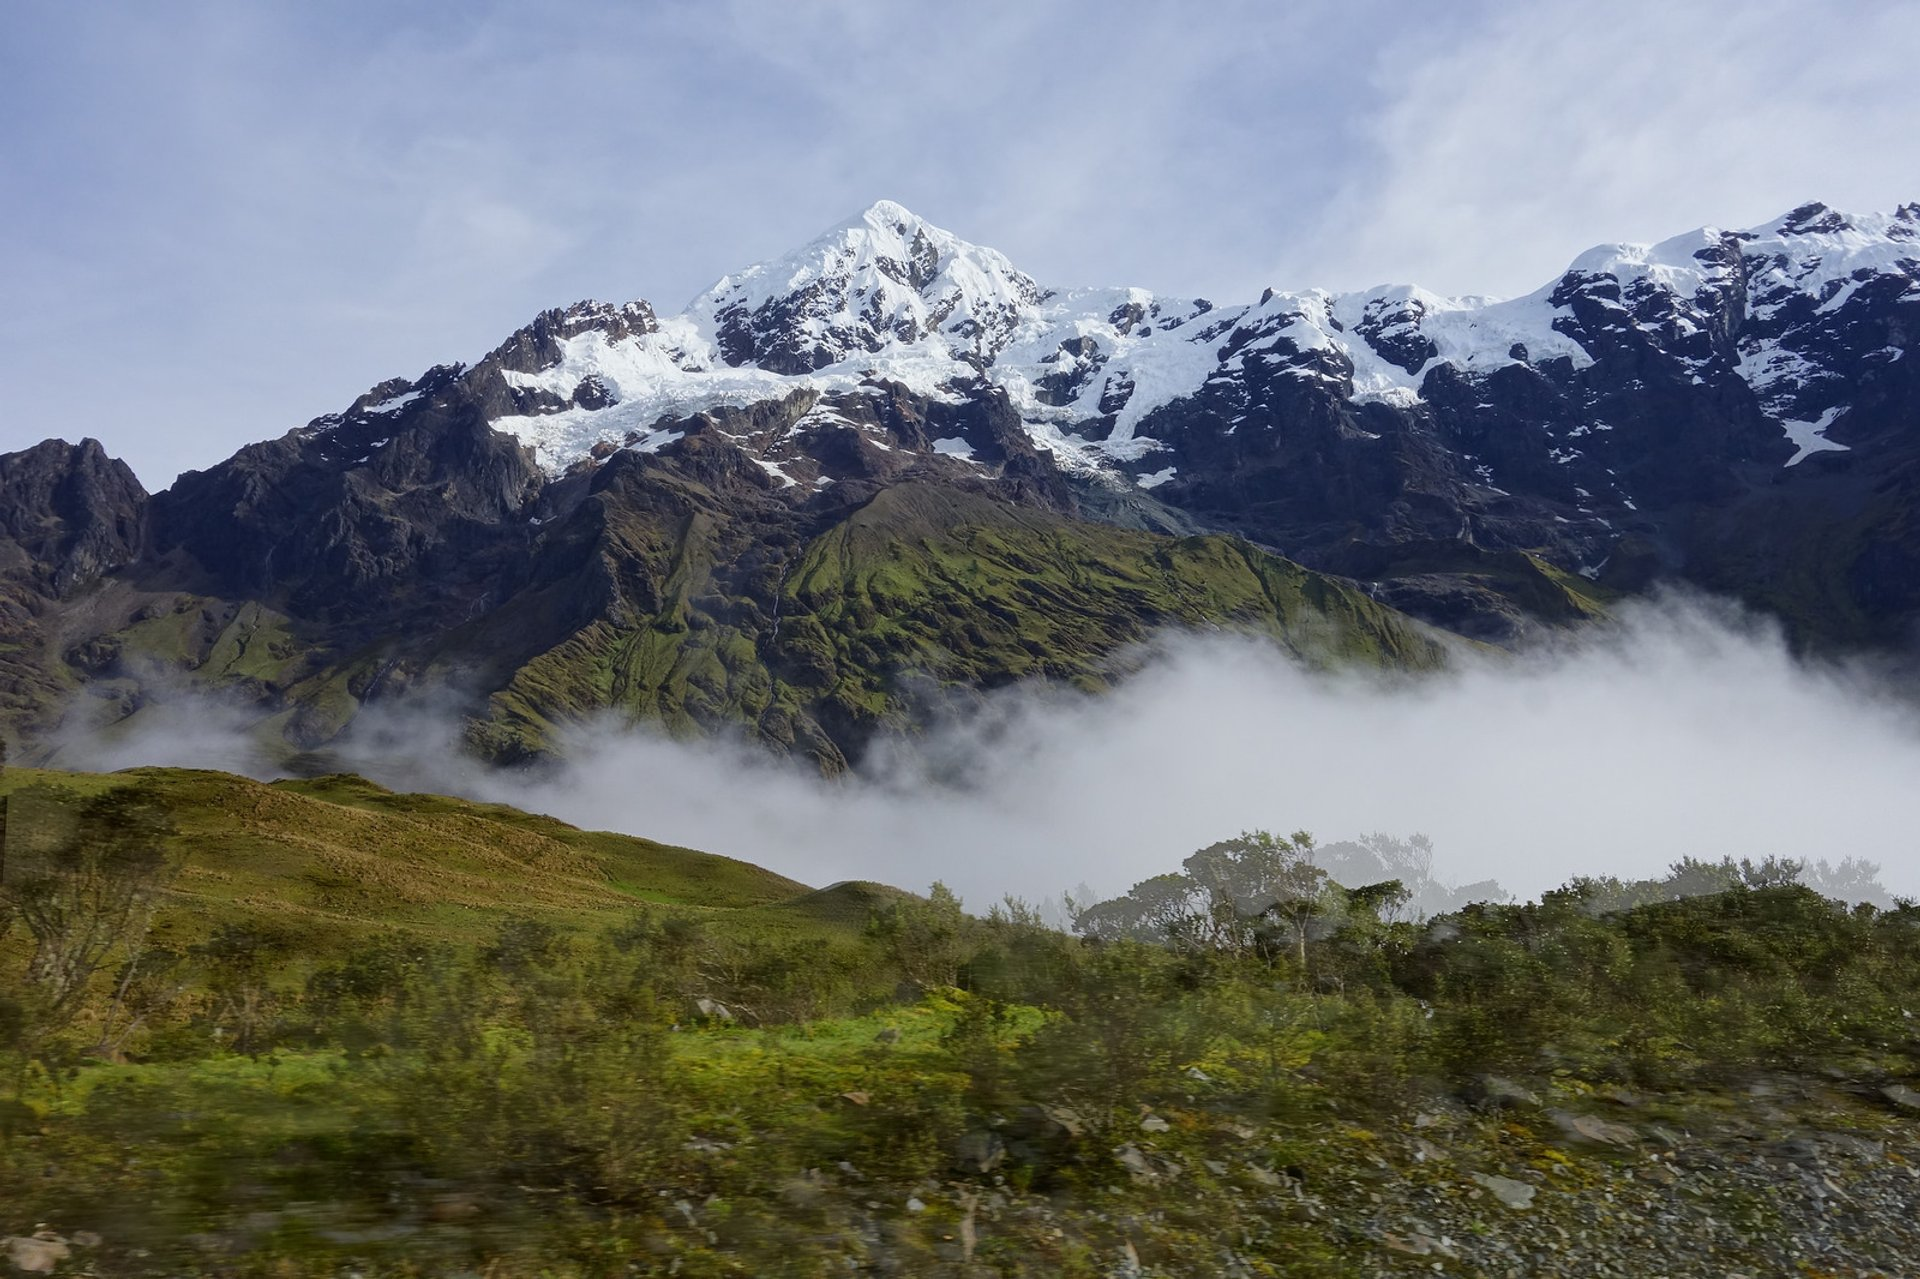 Trekking to Pongo de Mainique in Peru 2020 - Best Time